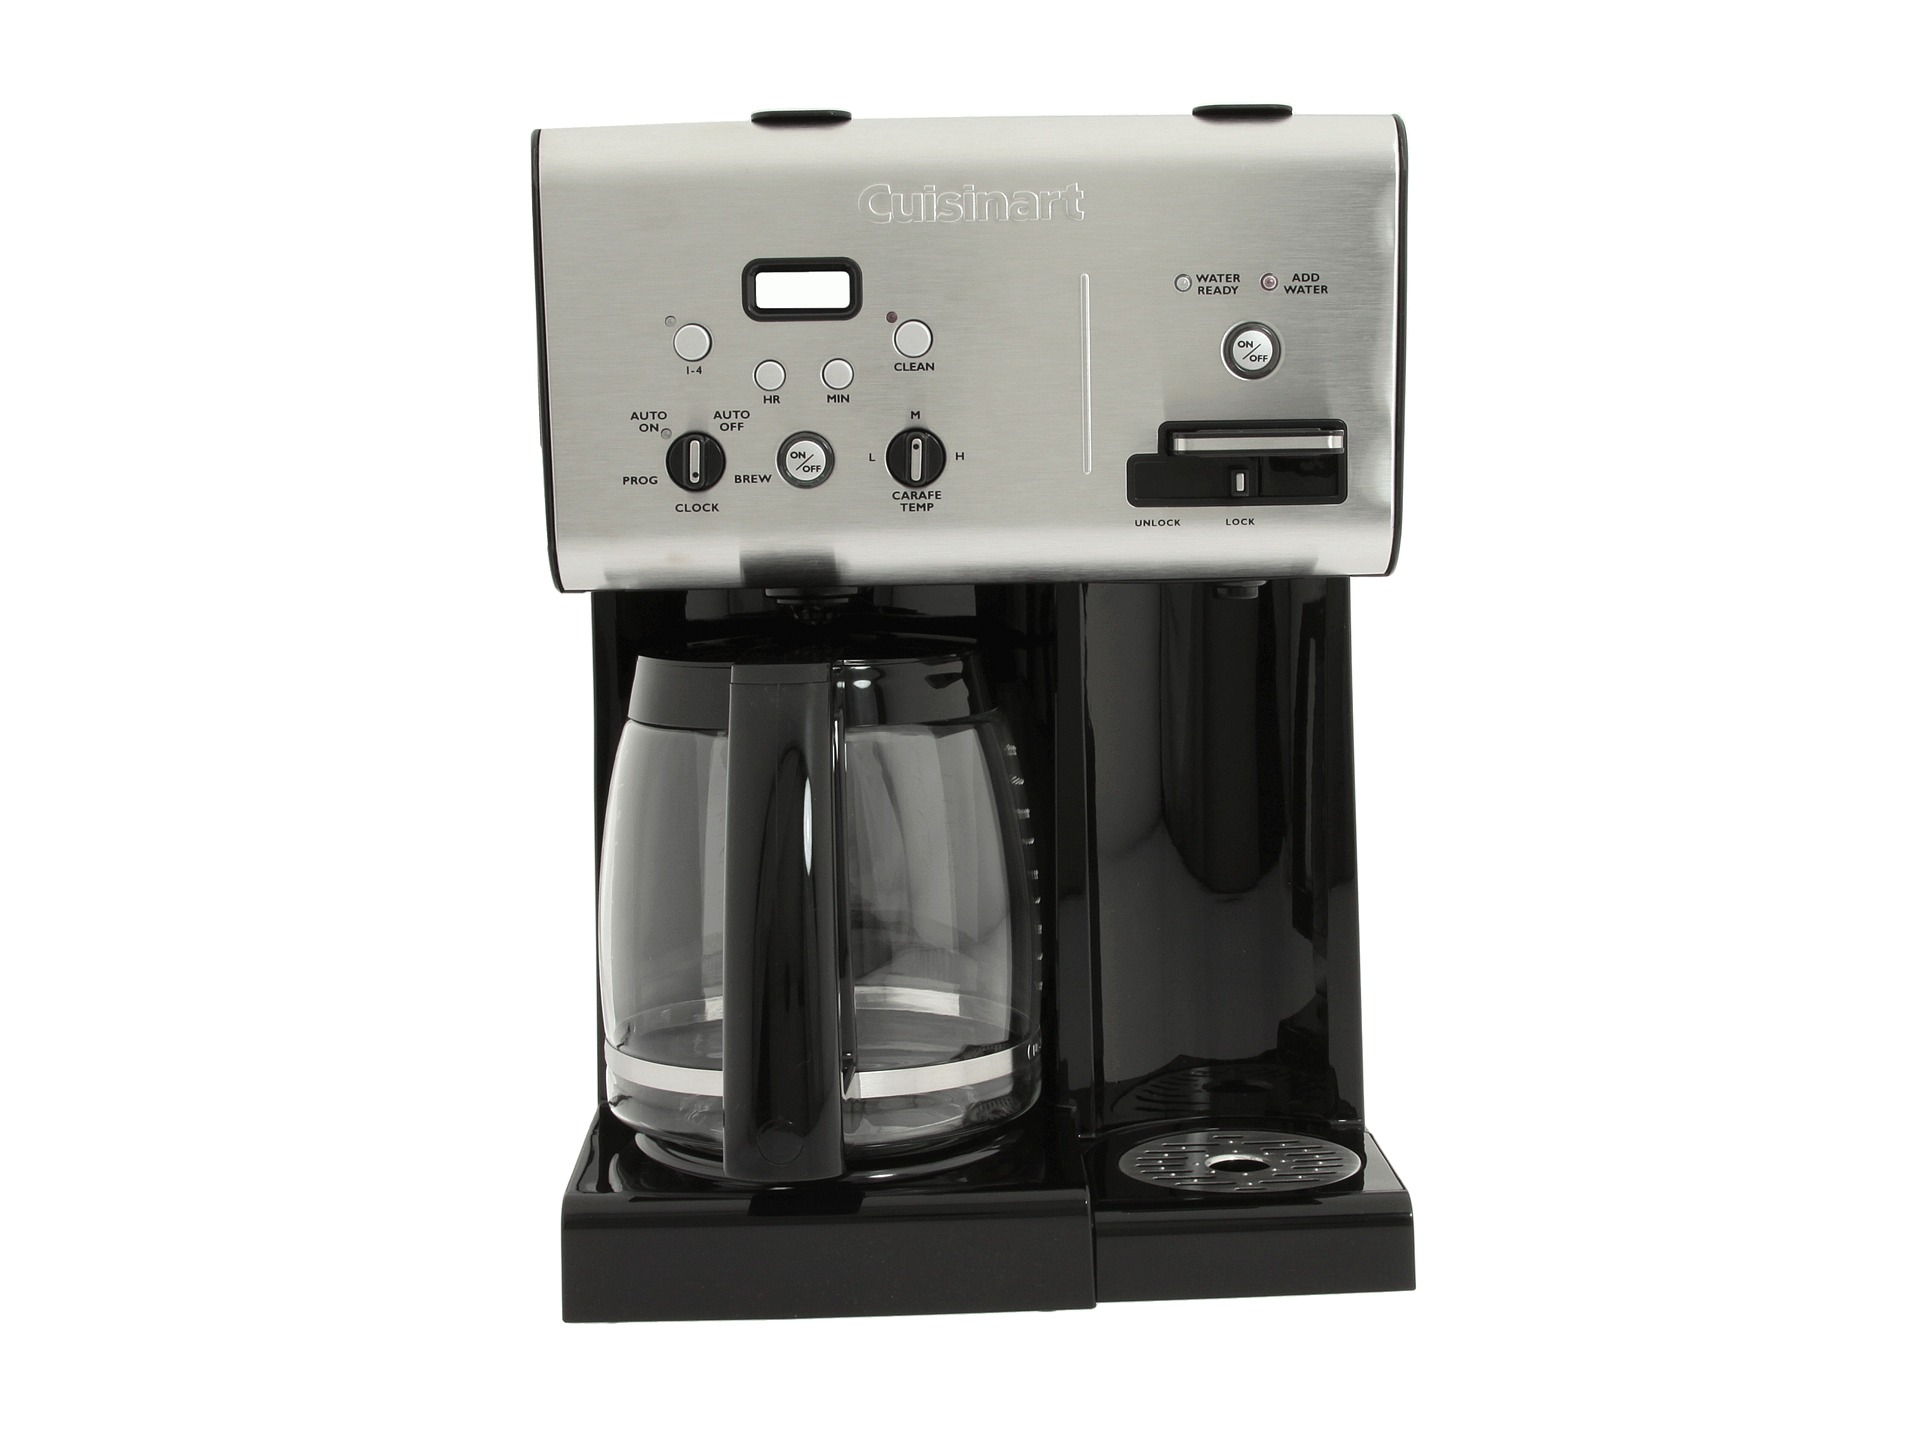 Cuisinart Chw 12 Coffee Plus 12 Cup Coffee Maker And Hot Water System Shipped Free at Zappos